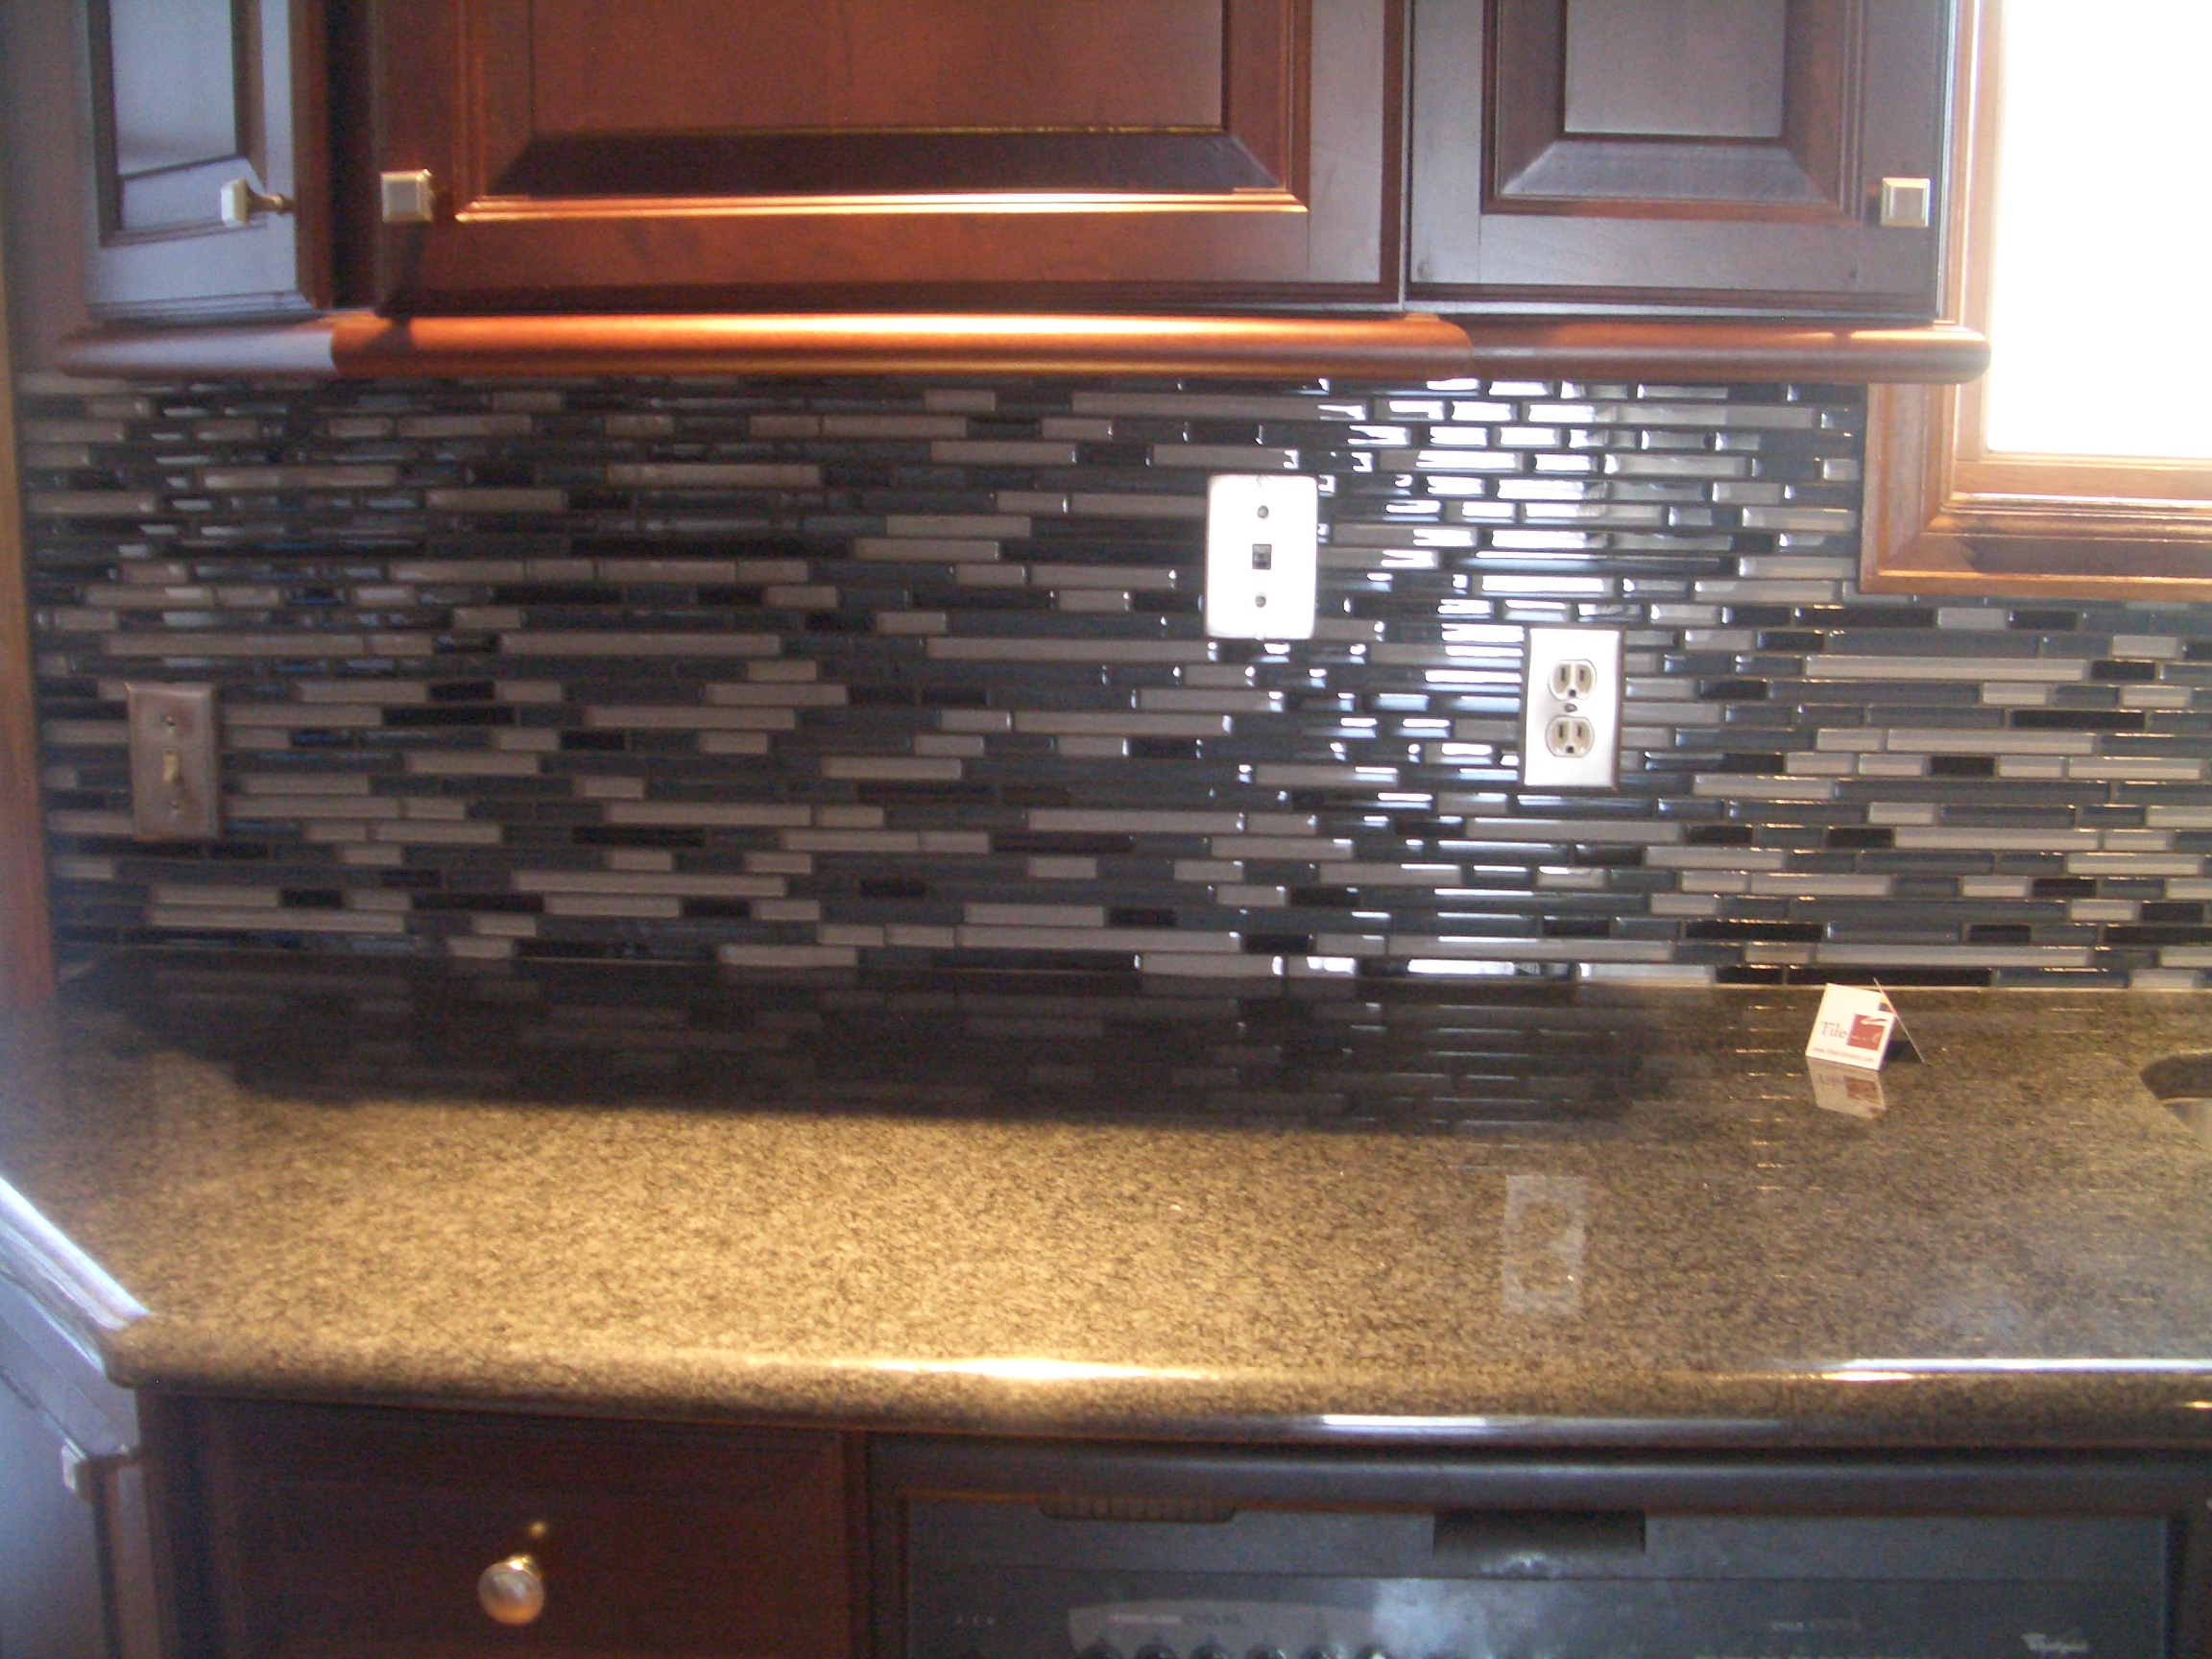 Glass tile backsplash no grout images Backsplash or no backsplash